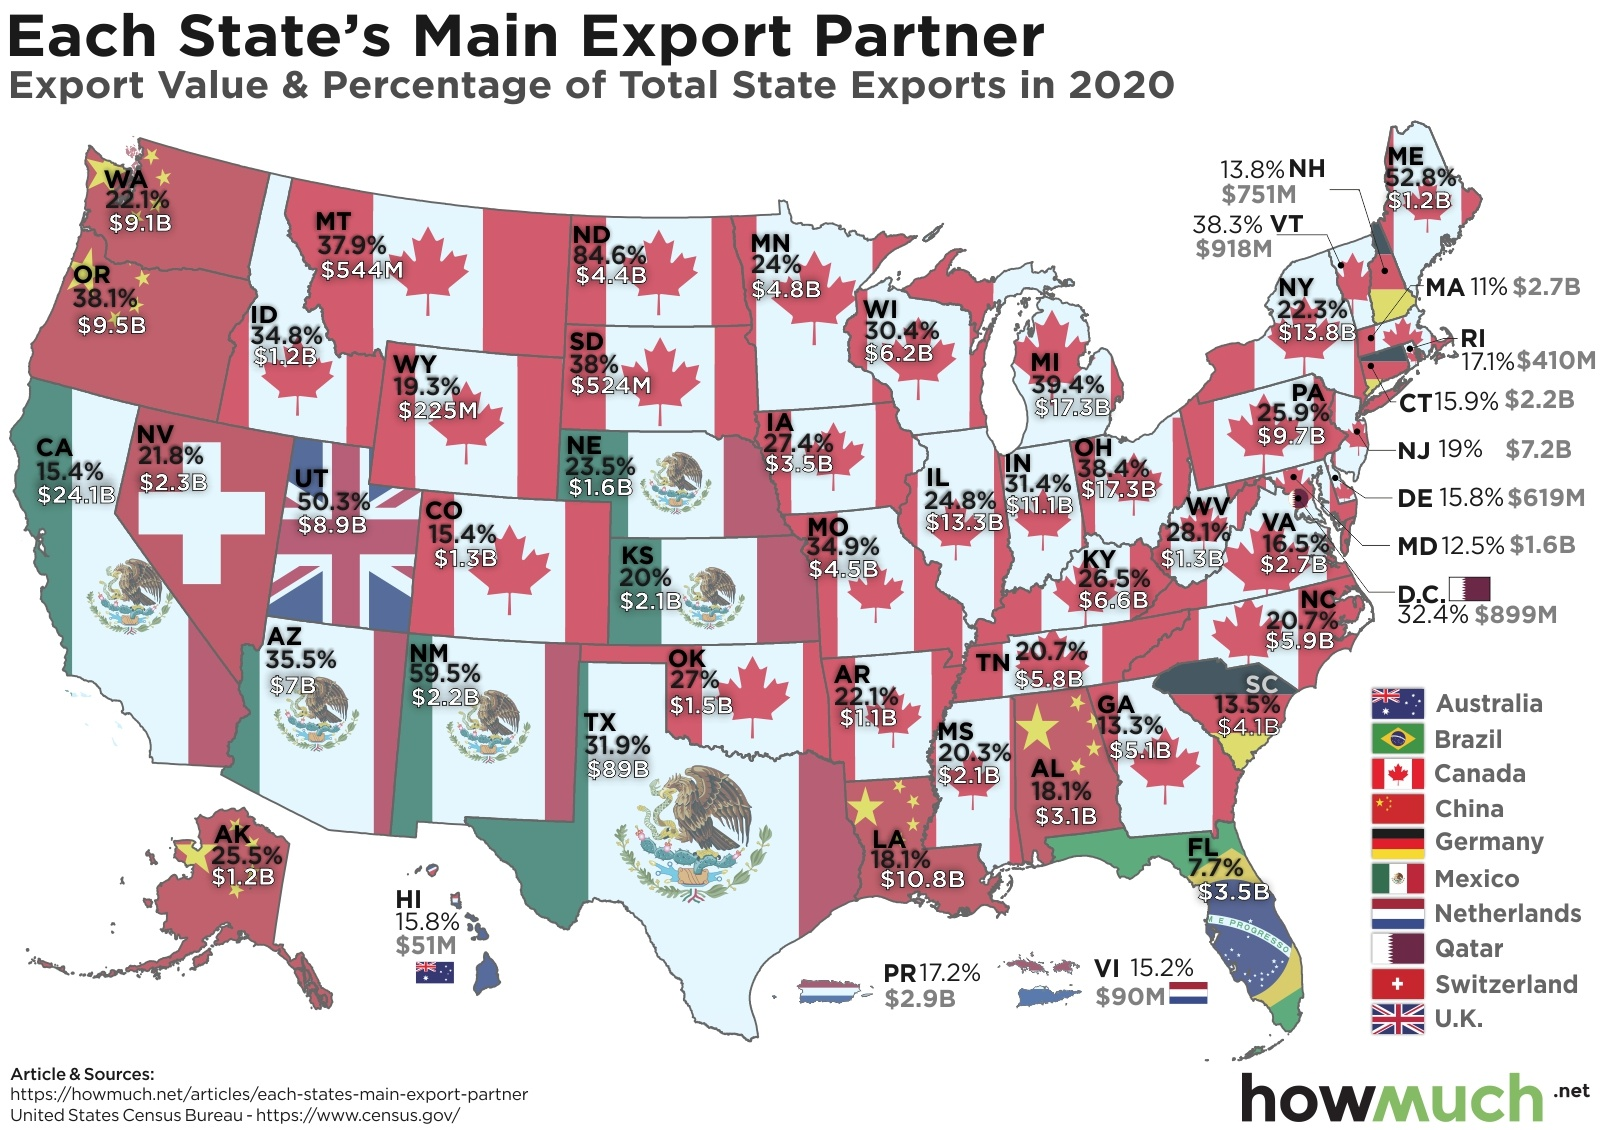 Trading Partner of Every U.S. State